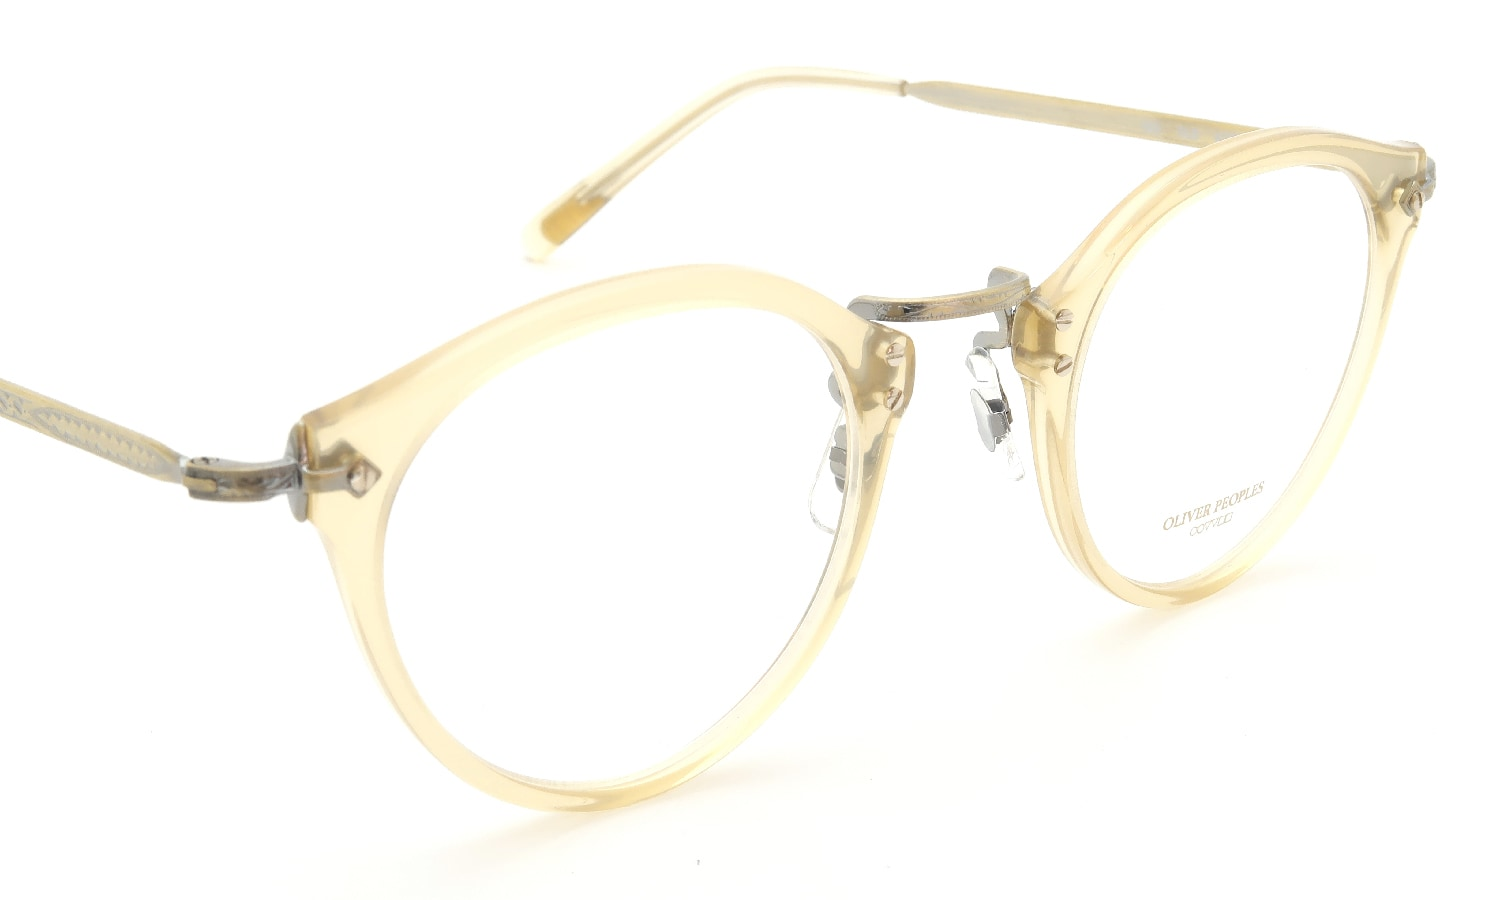 OLIVER PEOPLES 505 SLB 雅